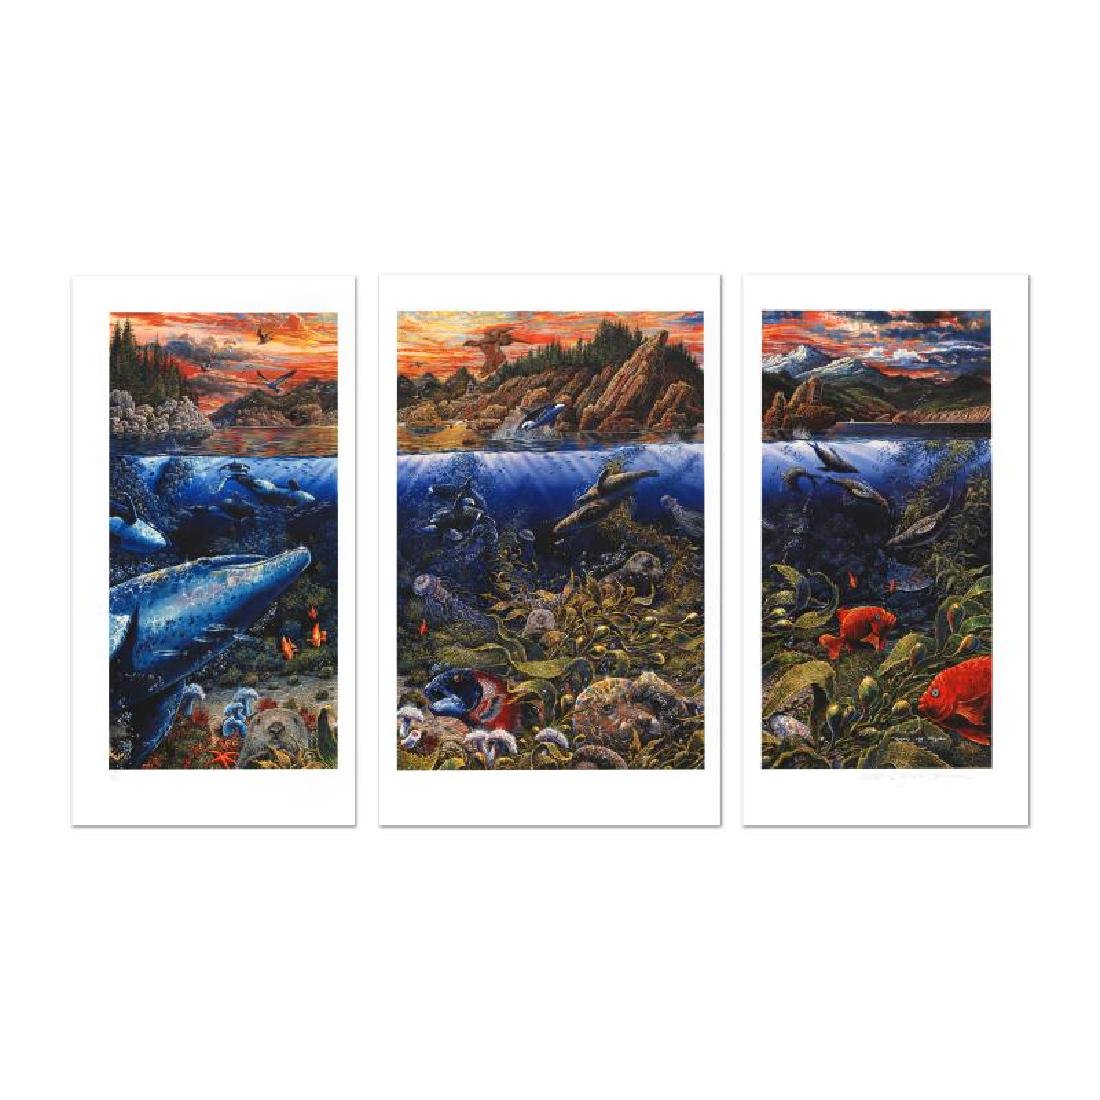 Underwater World Limited Edition Mixed Media Triptych - 3